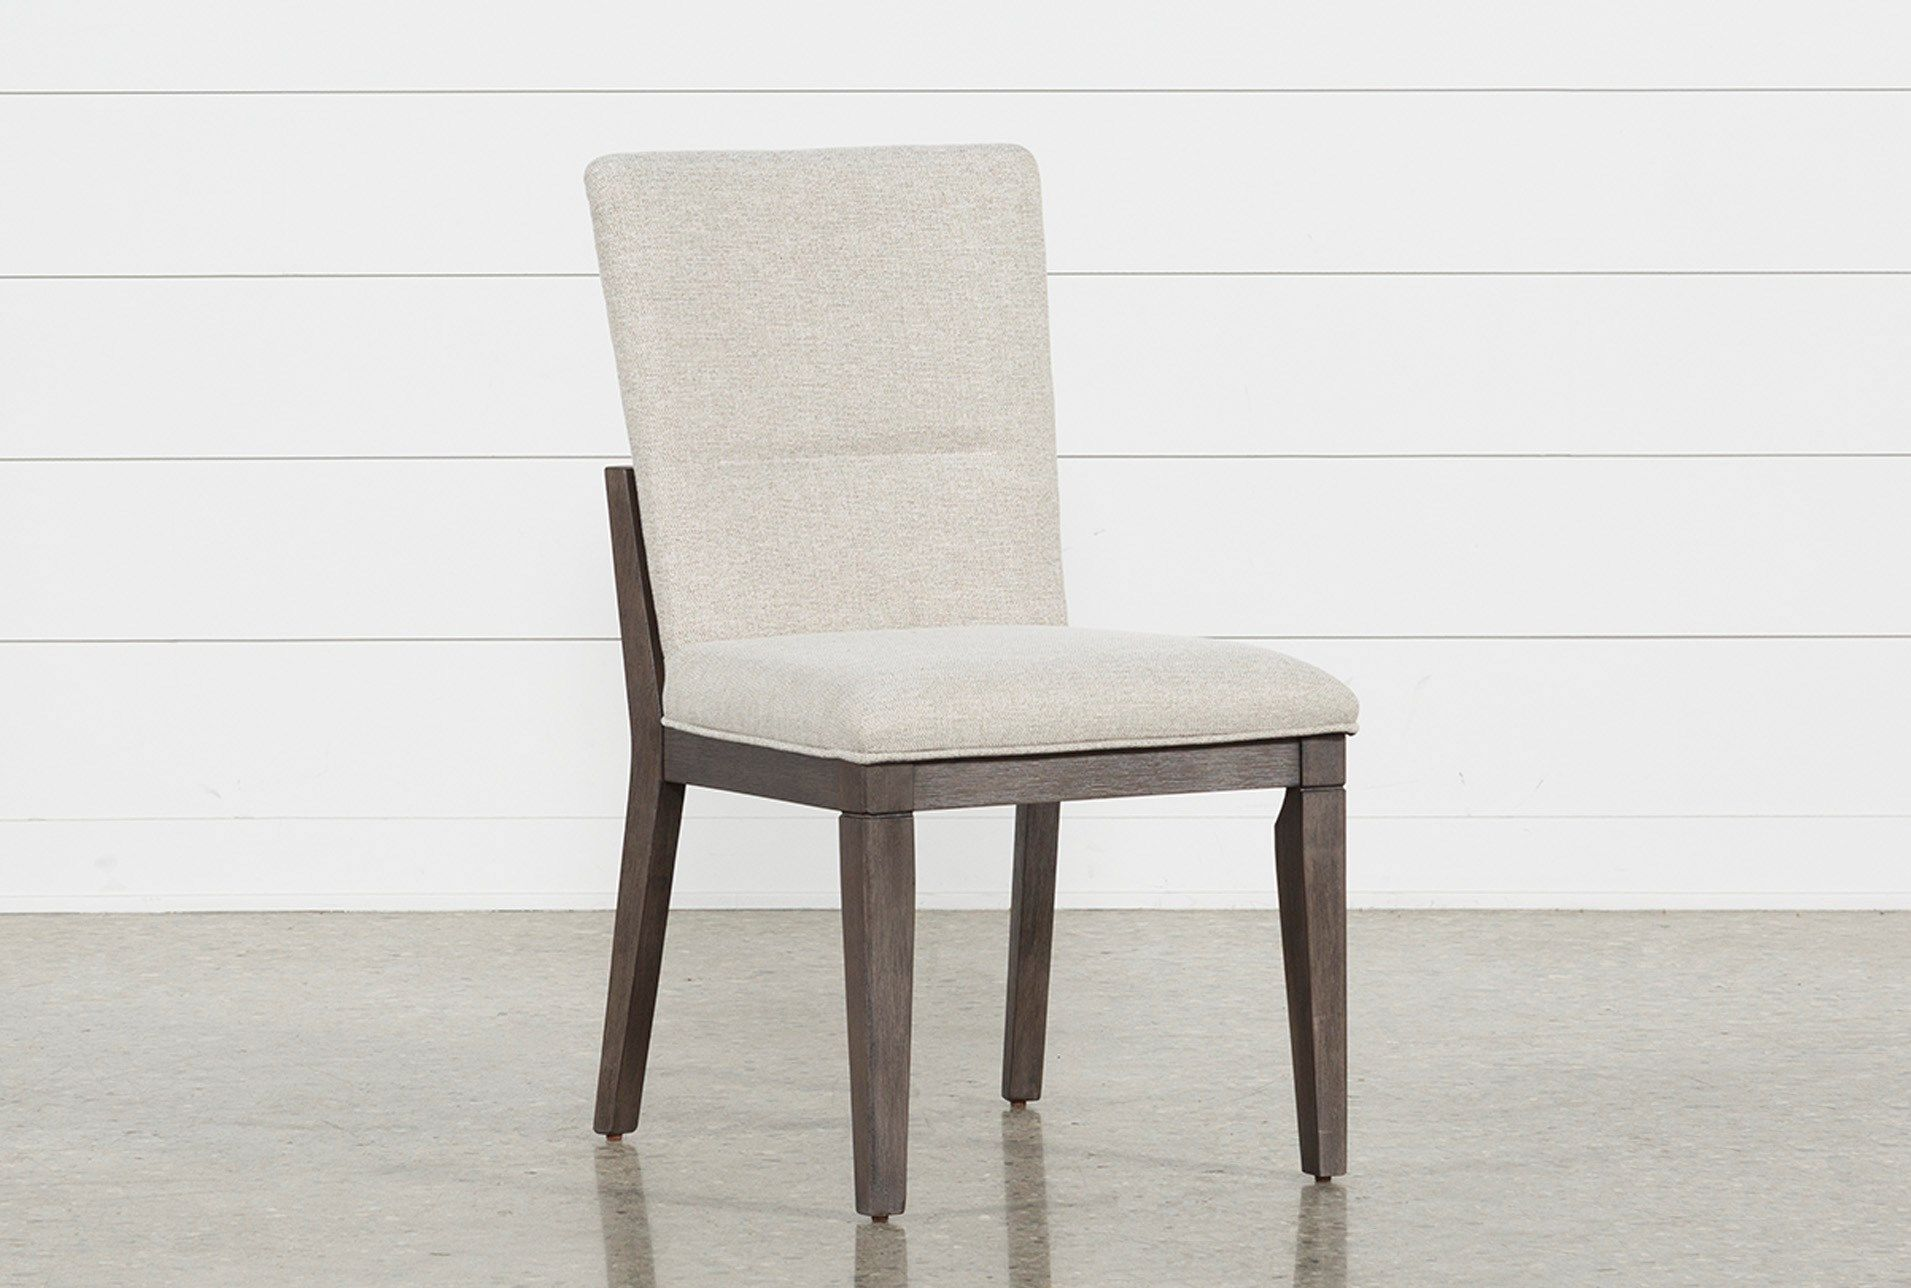 Helms Dining Side Chair Wood Dining Room Furniture Modern Wood Dining Room Side Chairs Dining